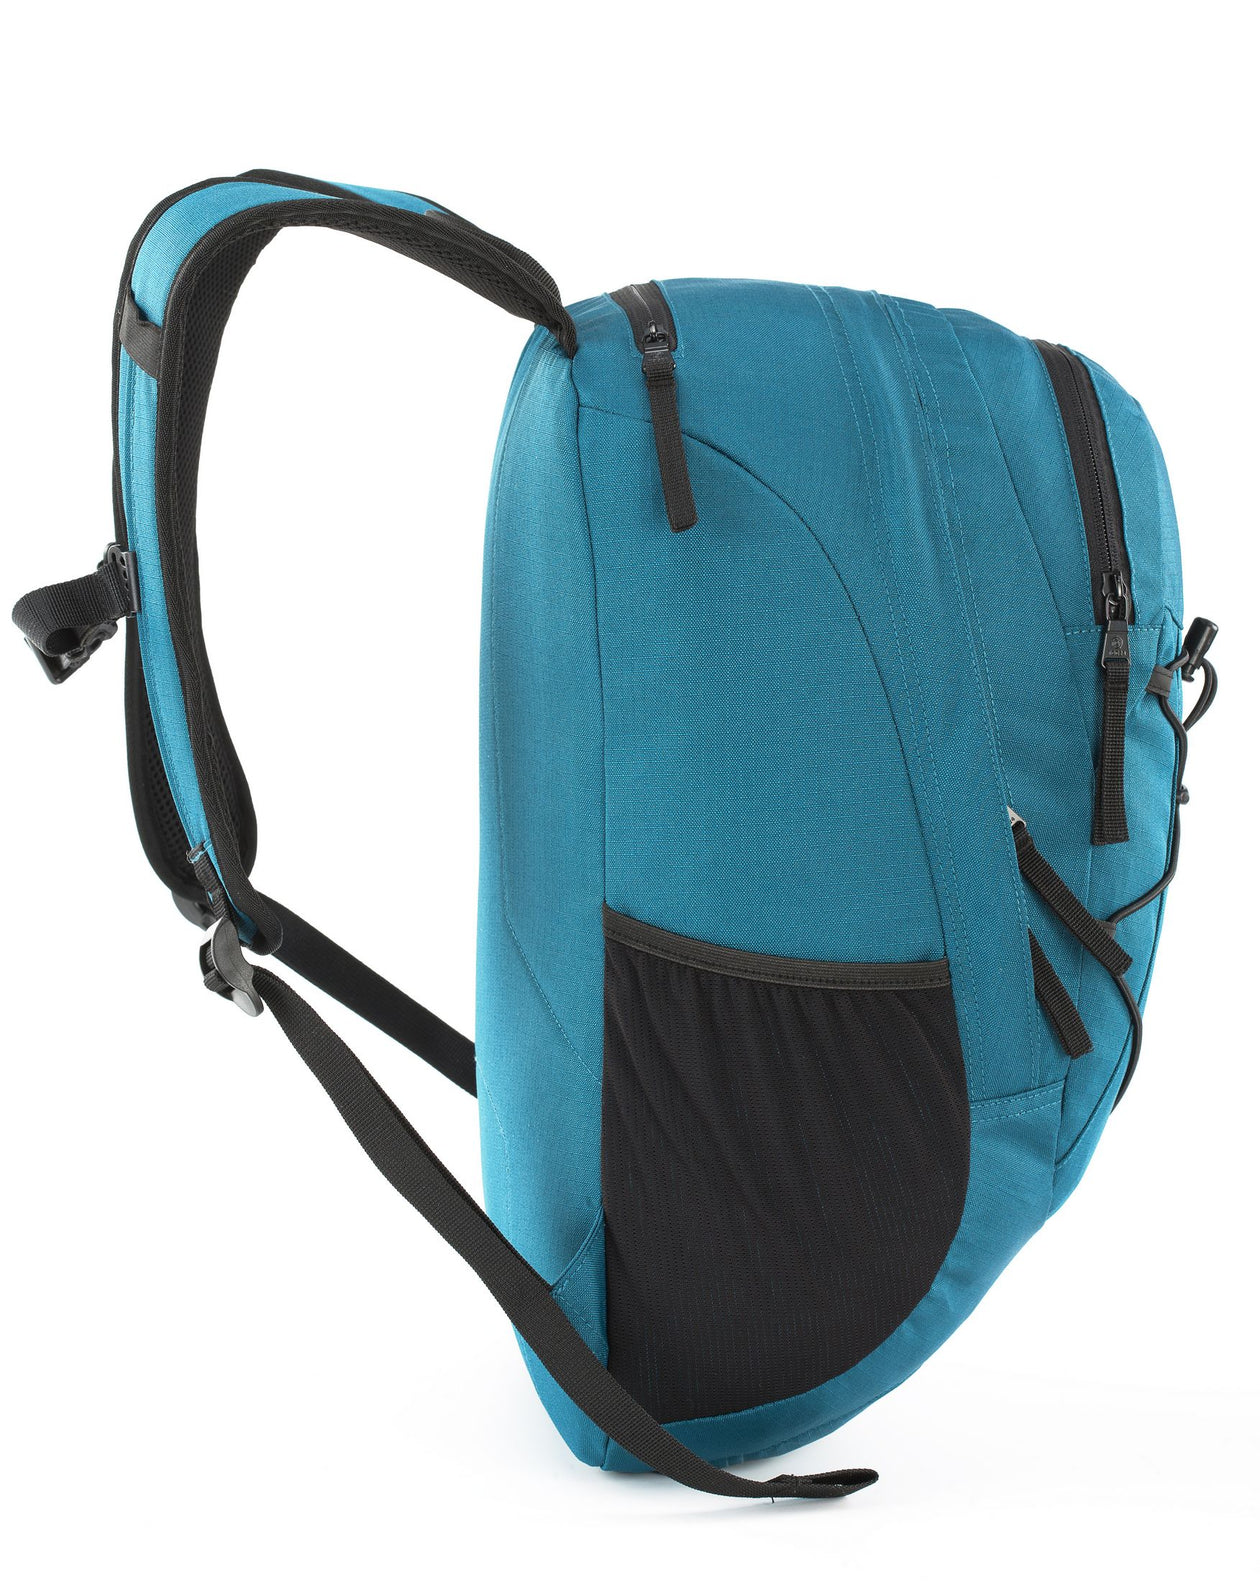 Staxton 20L Backpack - Teal image 4